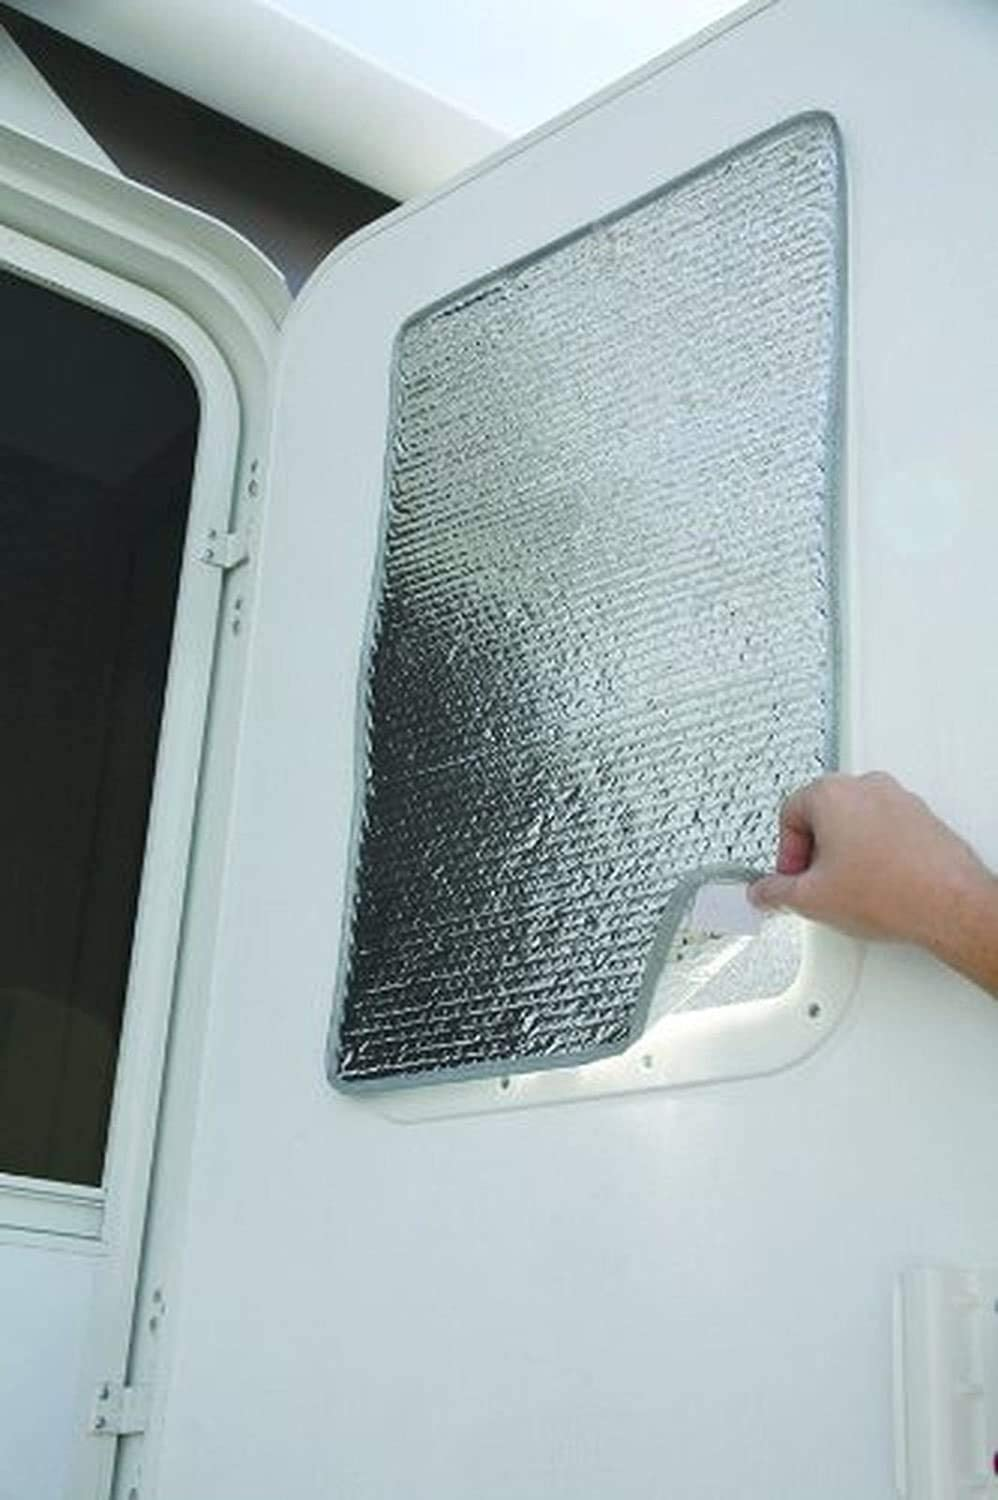 RV Door Window Cover Shade - Double-Sided 16 x 25 - Travel Trailer Reflective RV Window Shade Regulates Temperature - RV Window Coverings Protect Your RV from UV Rays - Easy to Install Sun Shade